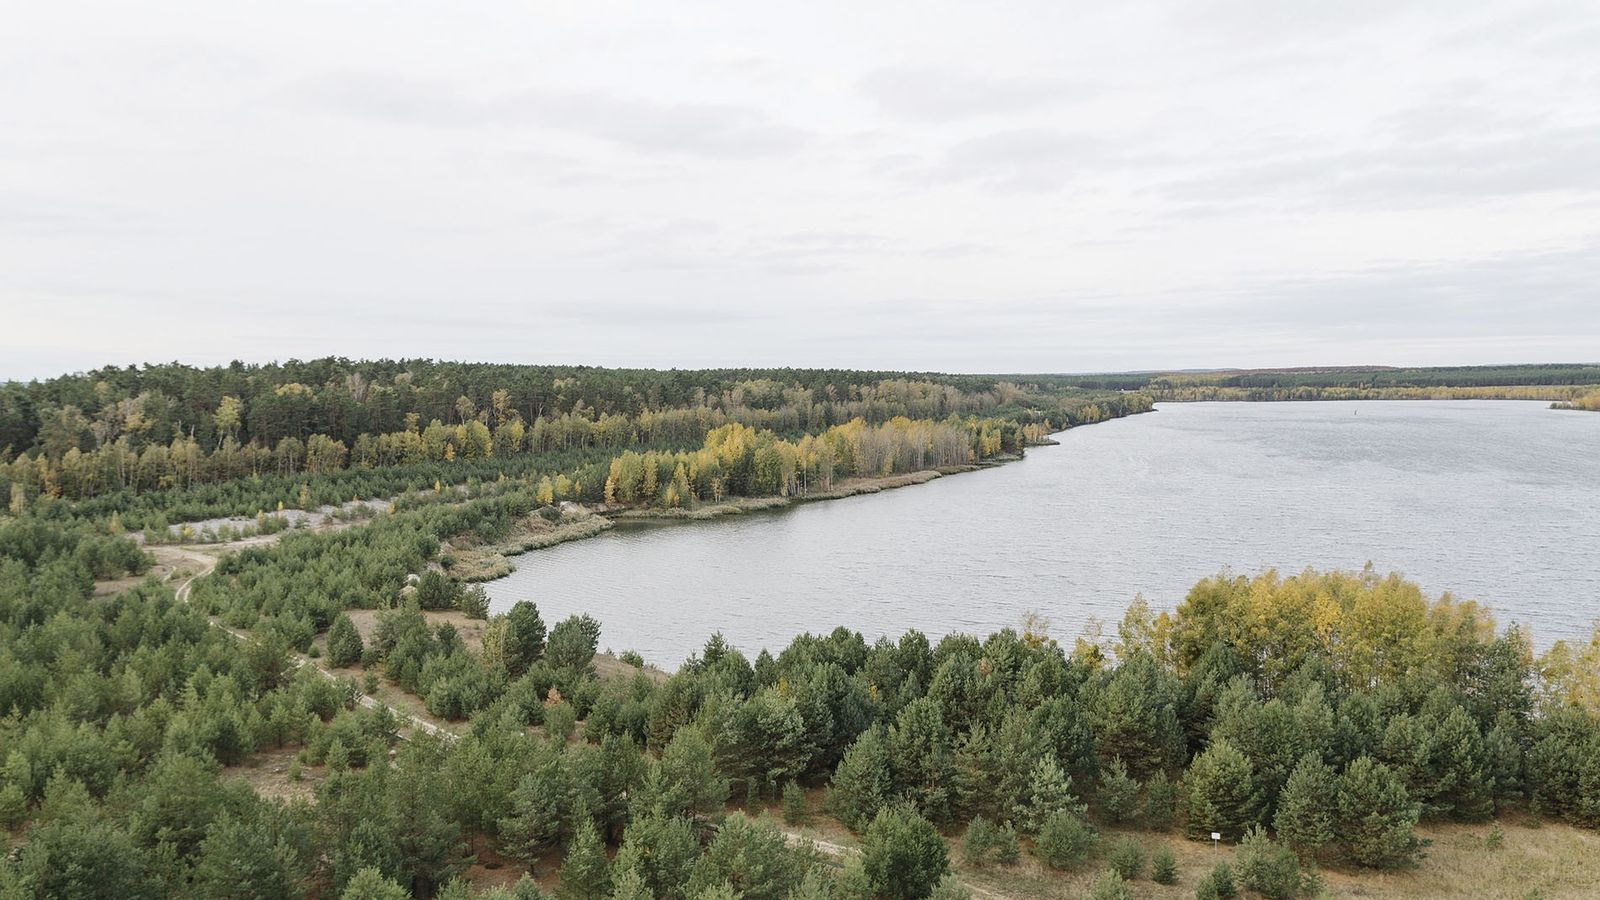 View from the top of the landmark Rusty Nail, an observation tower between Lake Sedlitz and ...